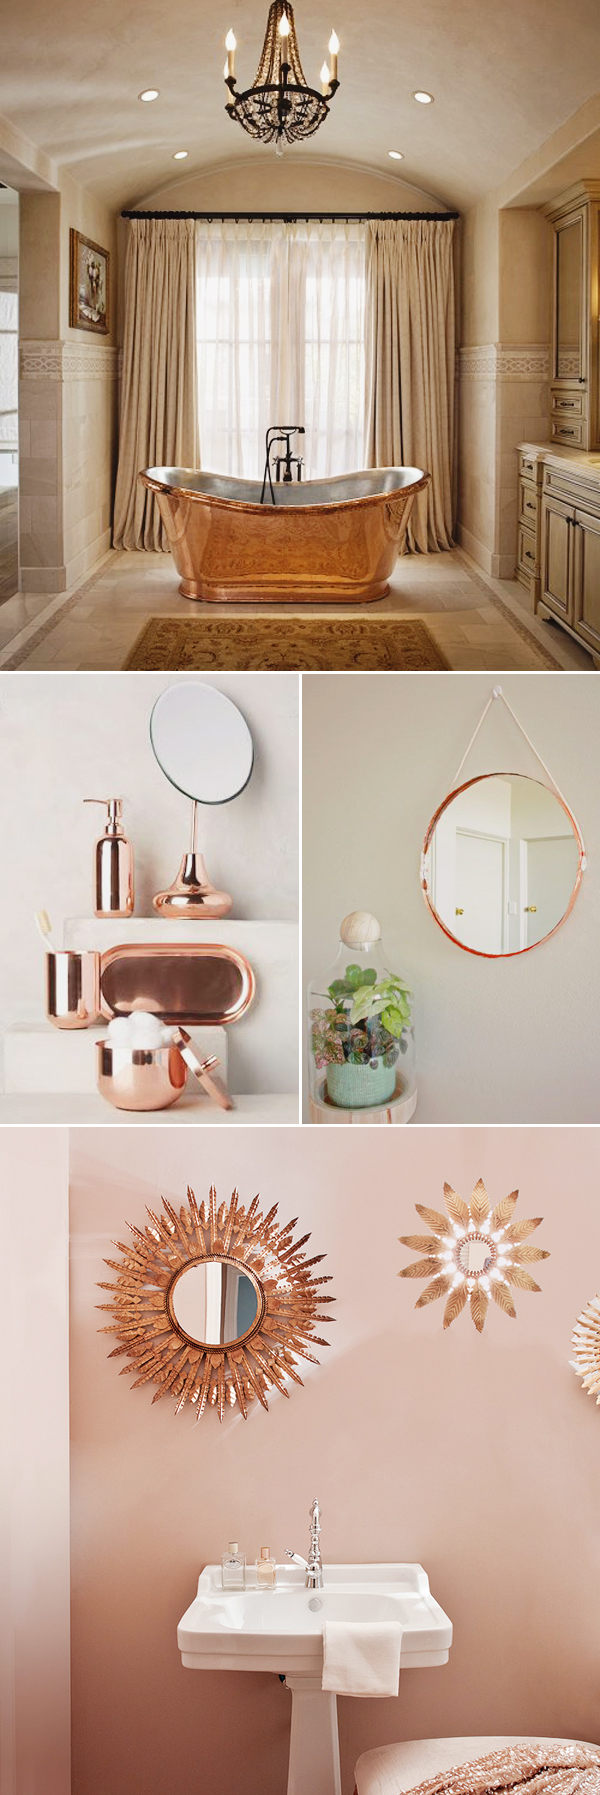 Rose Gold Bathroom Ideas Credainatconcom - Metallic gold bathroom accessories